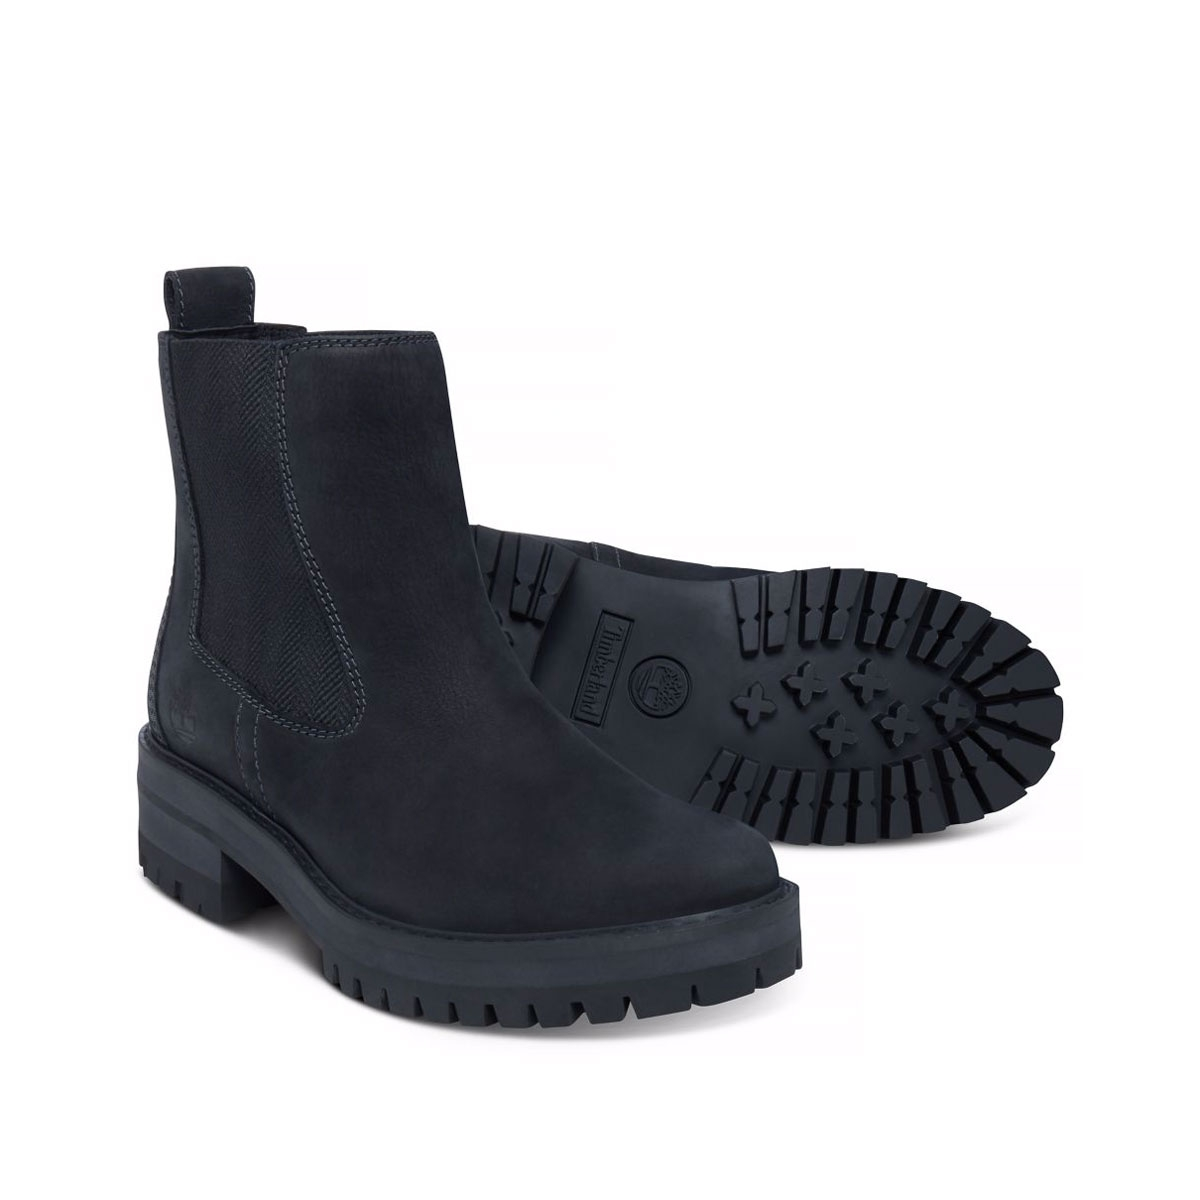 Image of Timberland Courmayeur Valley Chelsea Boots (Women s) - Black  Nubuck ... aa5d661b8c